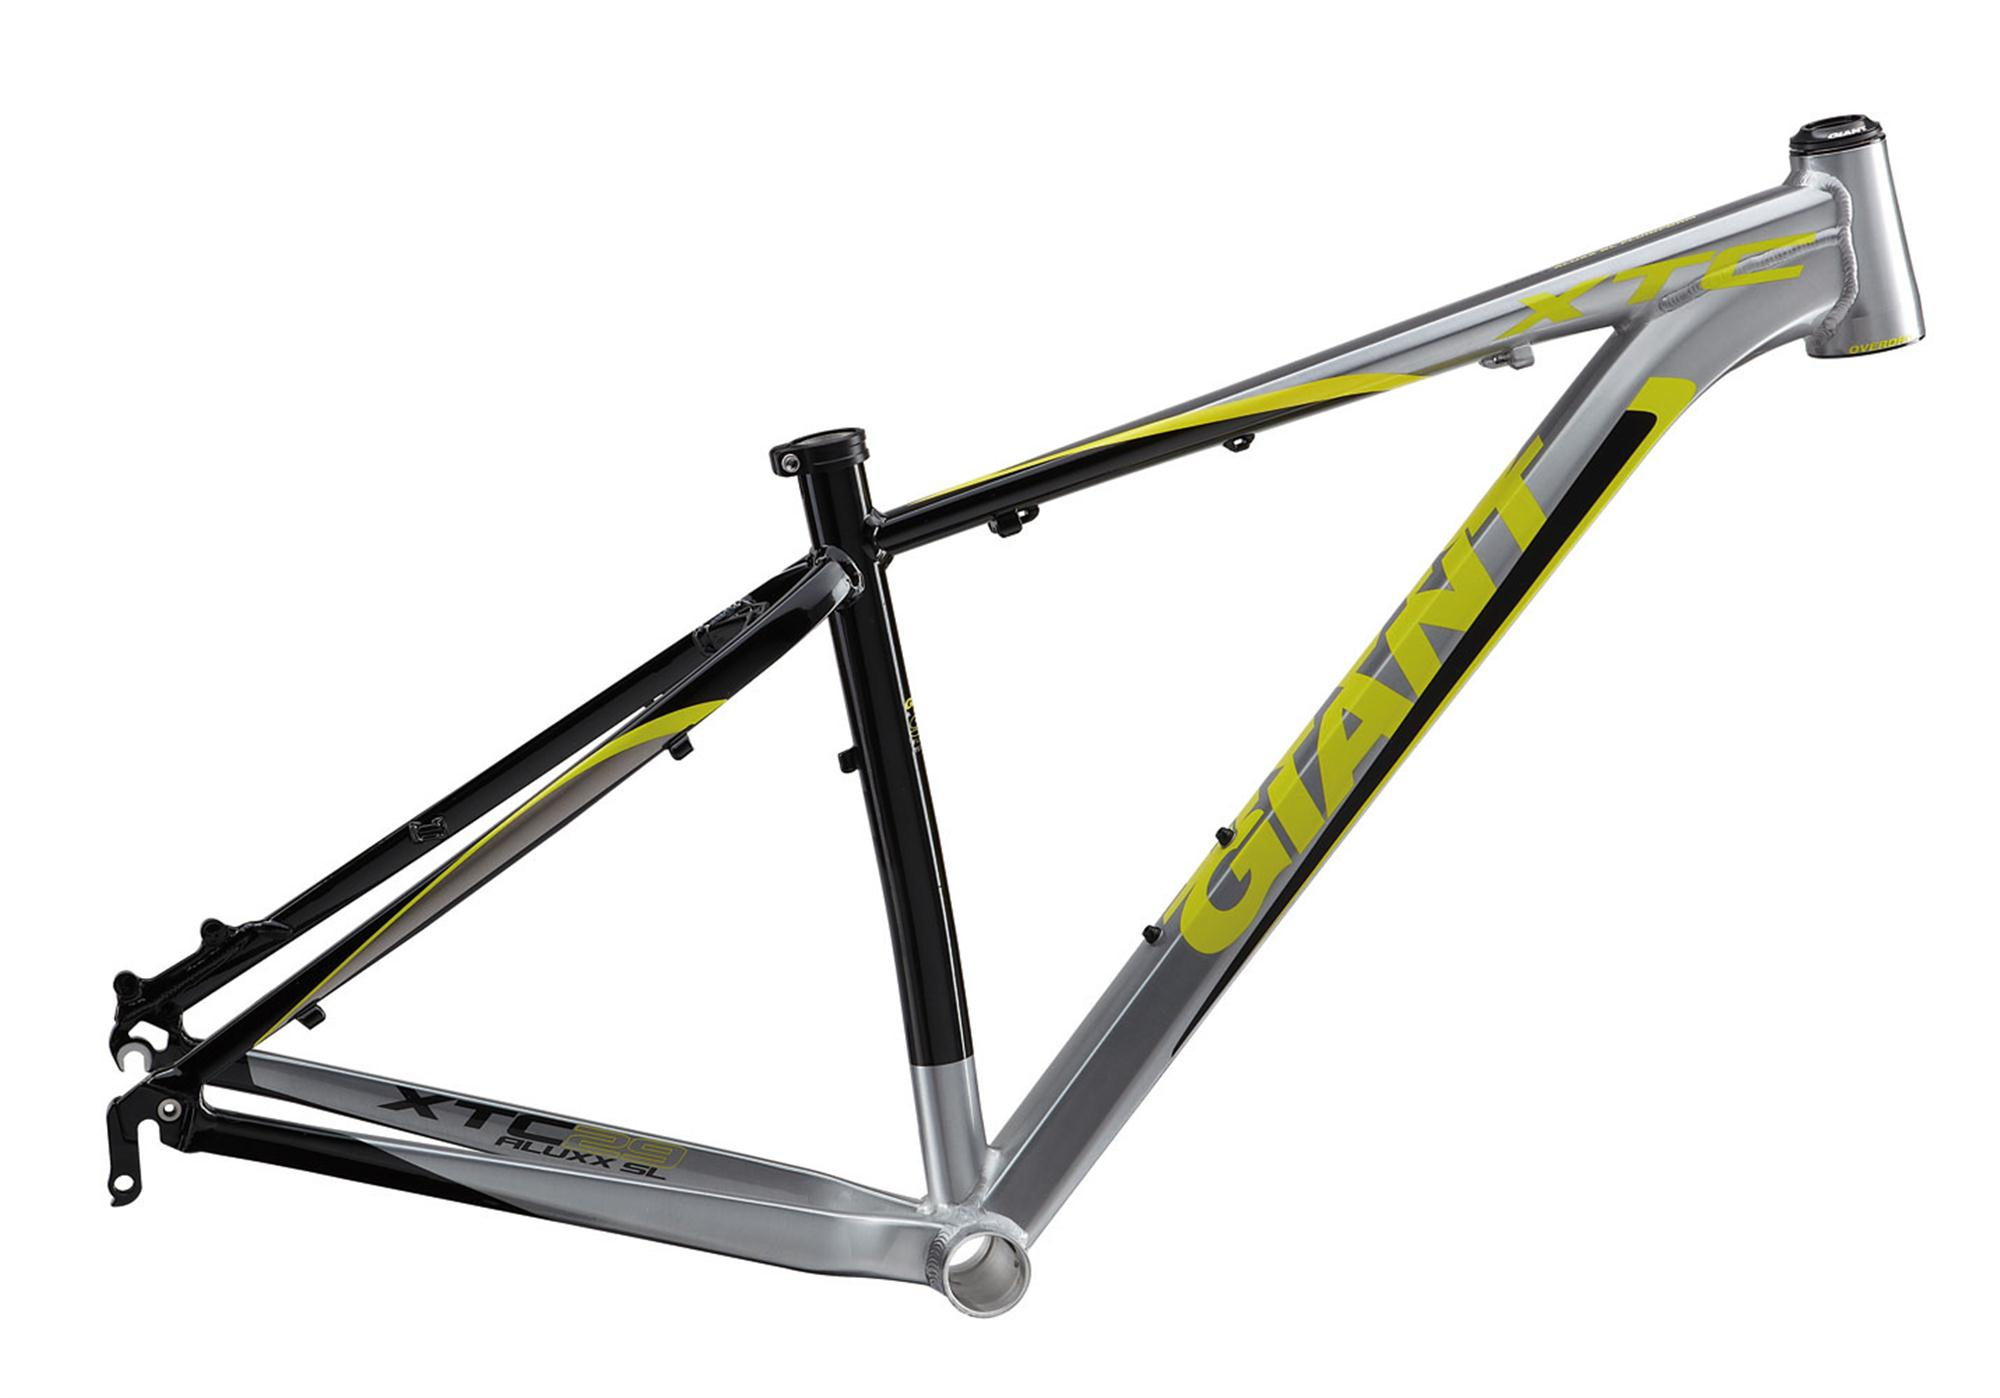 https://www.giant-bicycles.com/_generated/_generated_uk/bikes/models/images/2000/2013/2013_GIANT_XTC_29ER_FRAMESET.jpg